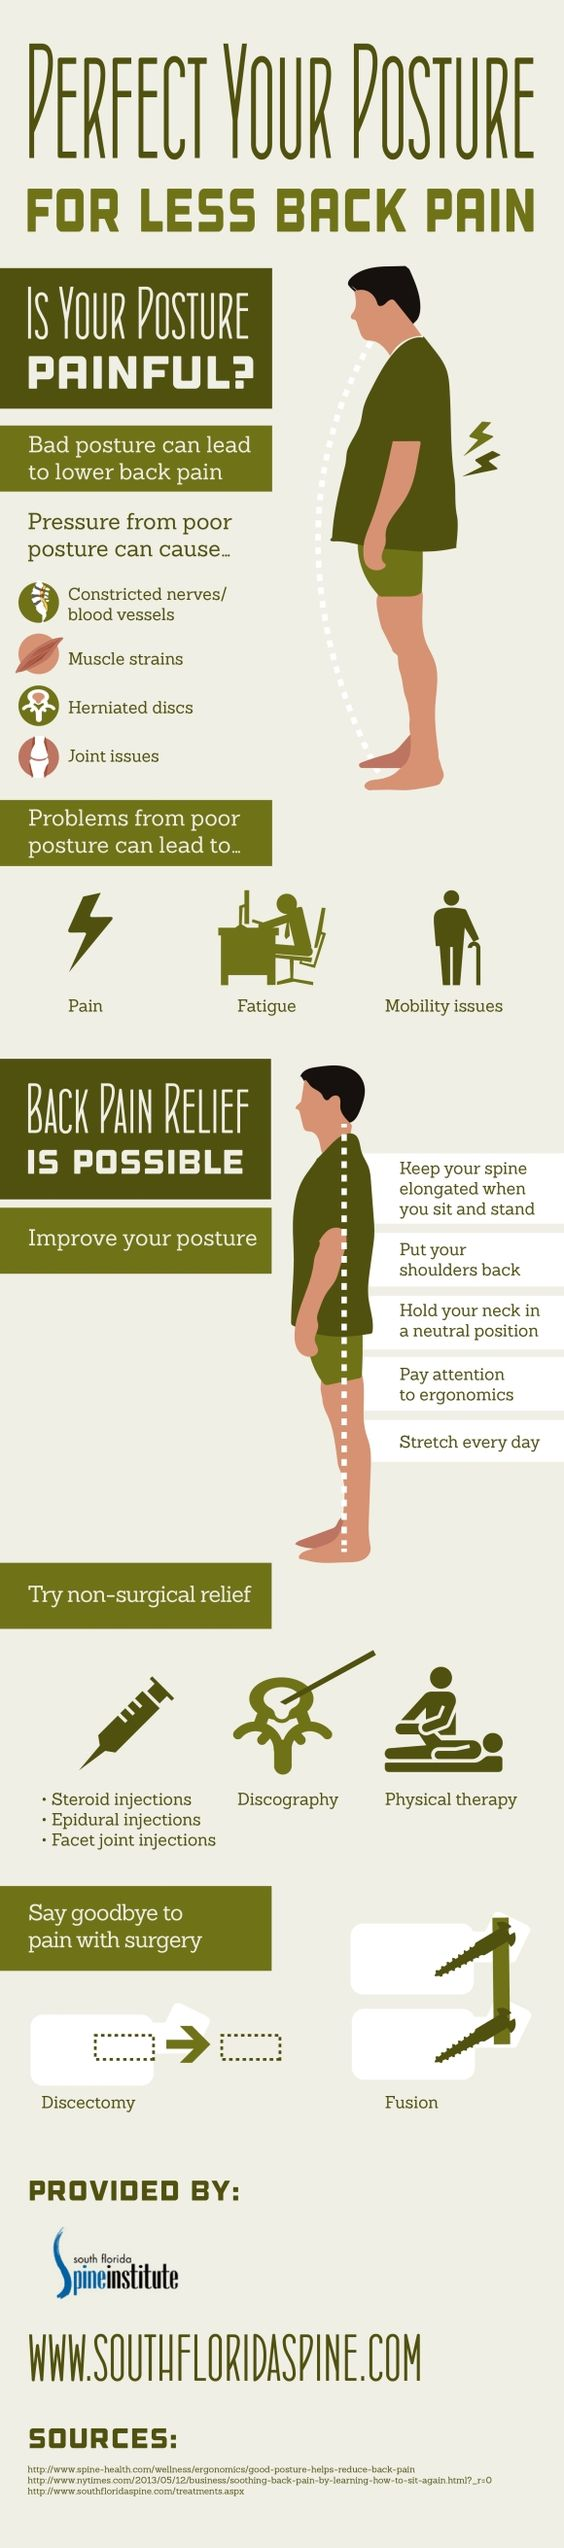 Lifestyle Changes to Reduce Back Pain